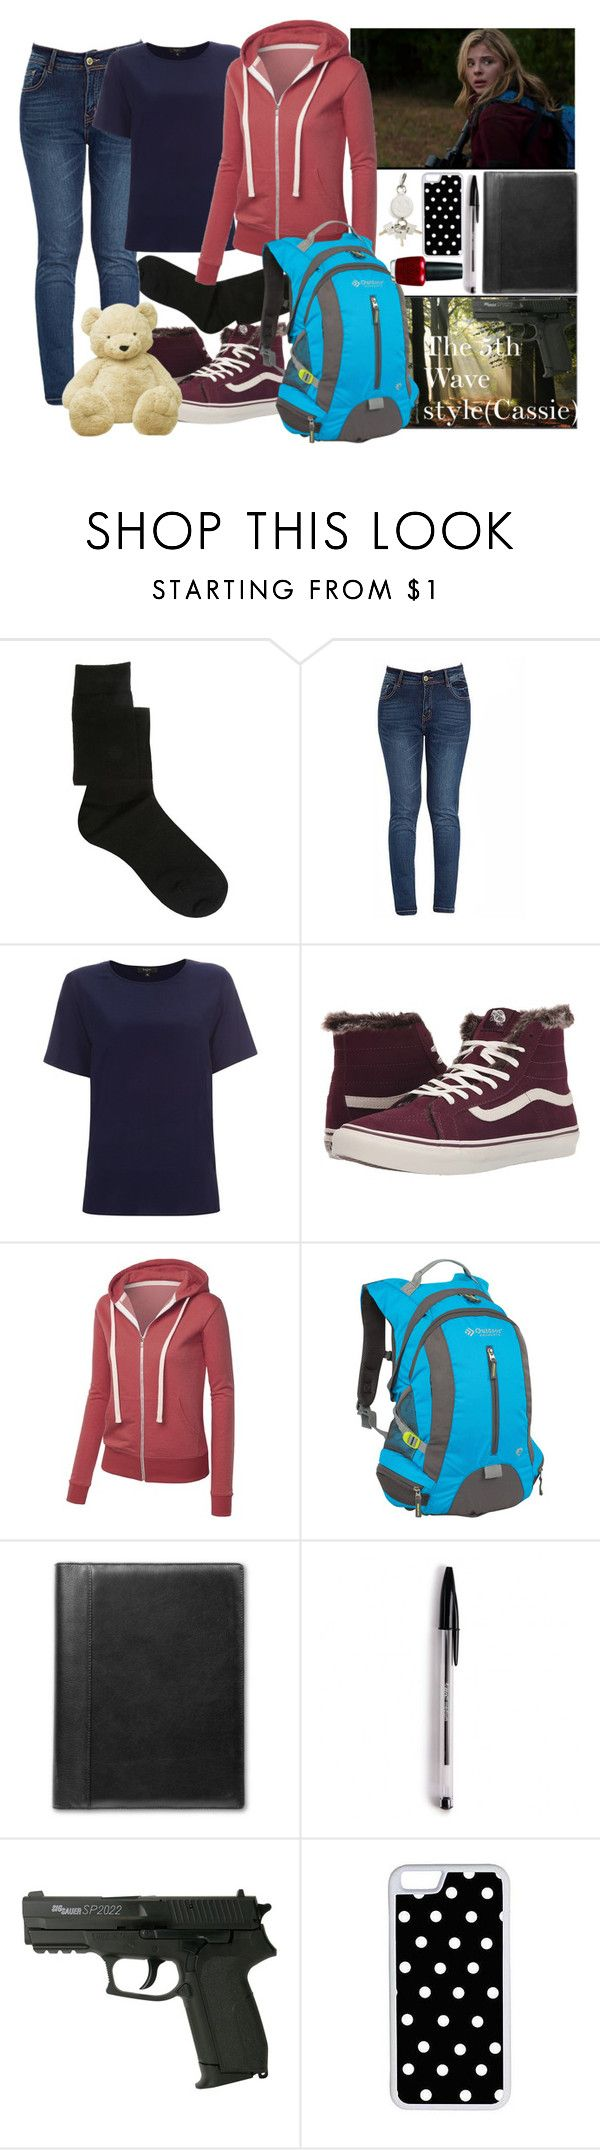 """""""The 5th Wave - Cassie Sullivan Style"""" by victoriaaili ❤ liked on Polyvore featuring ASOS, Paul Smith, Vans, CellPowerCases, OPI, Alexander Wang, modern, women's clothing, women and female"""